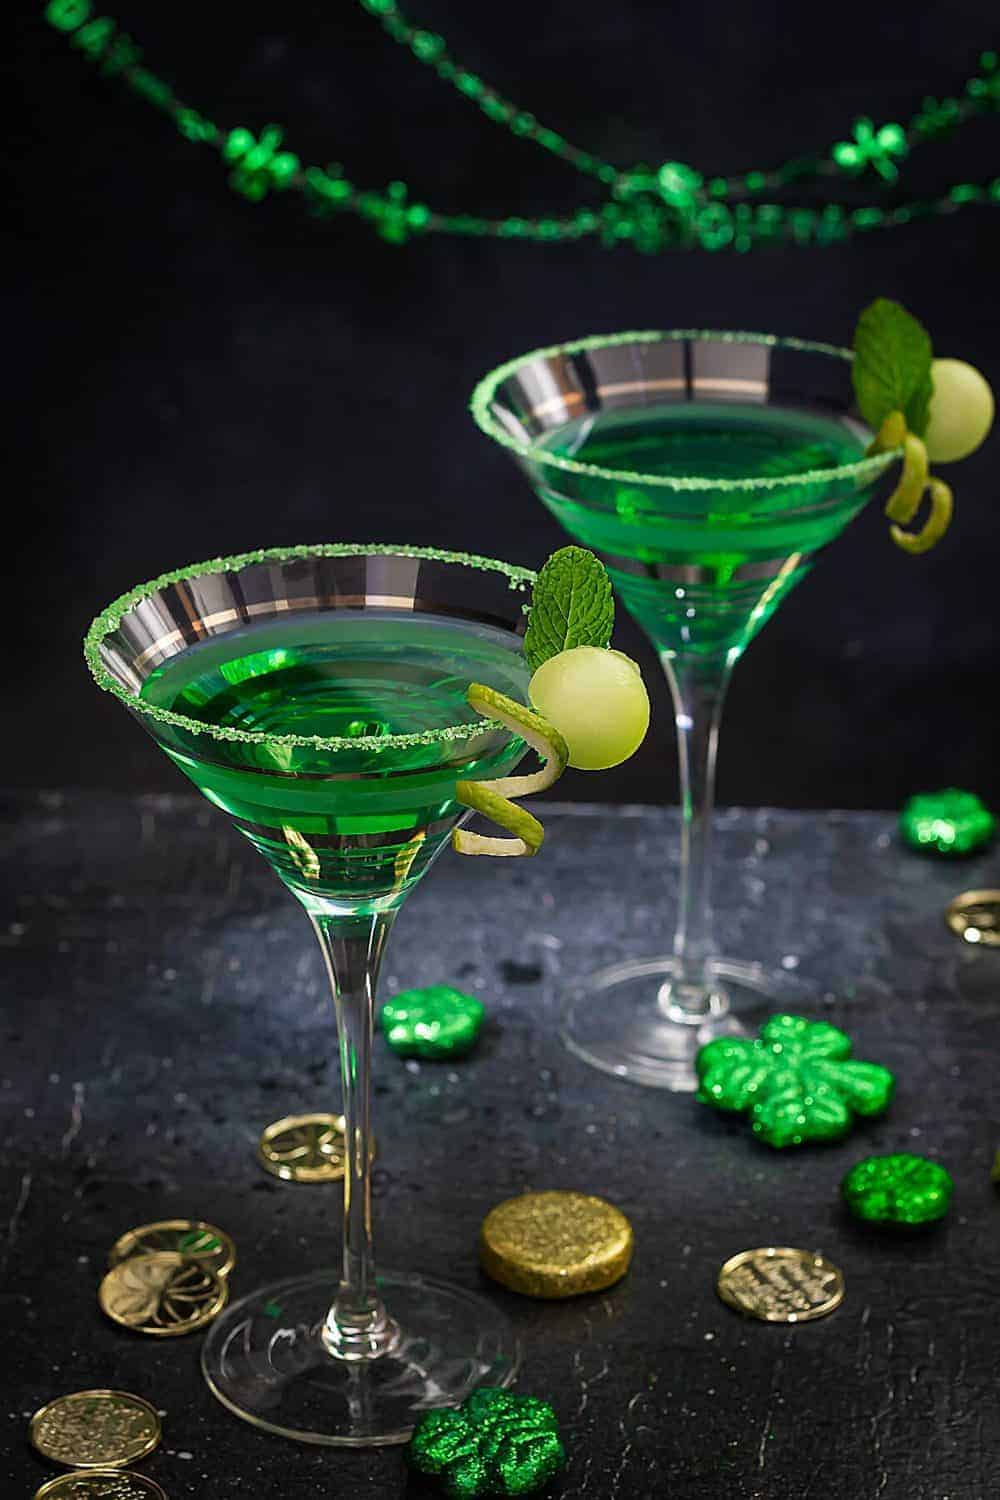 Two martini glasses with green cocktail on a black background.